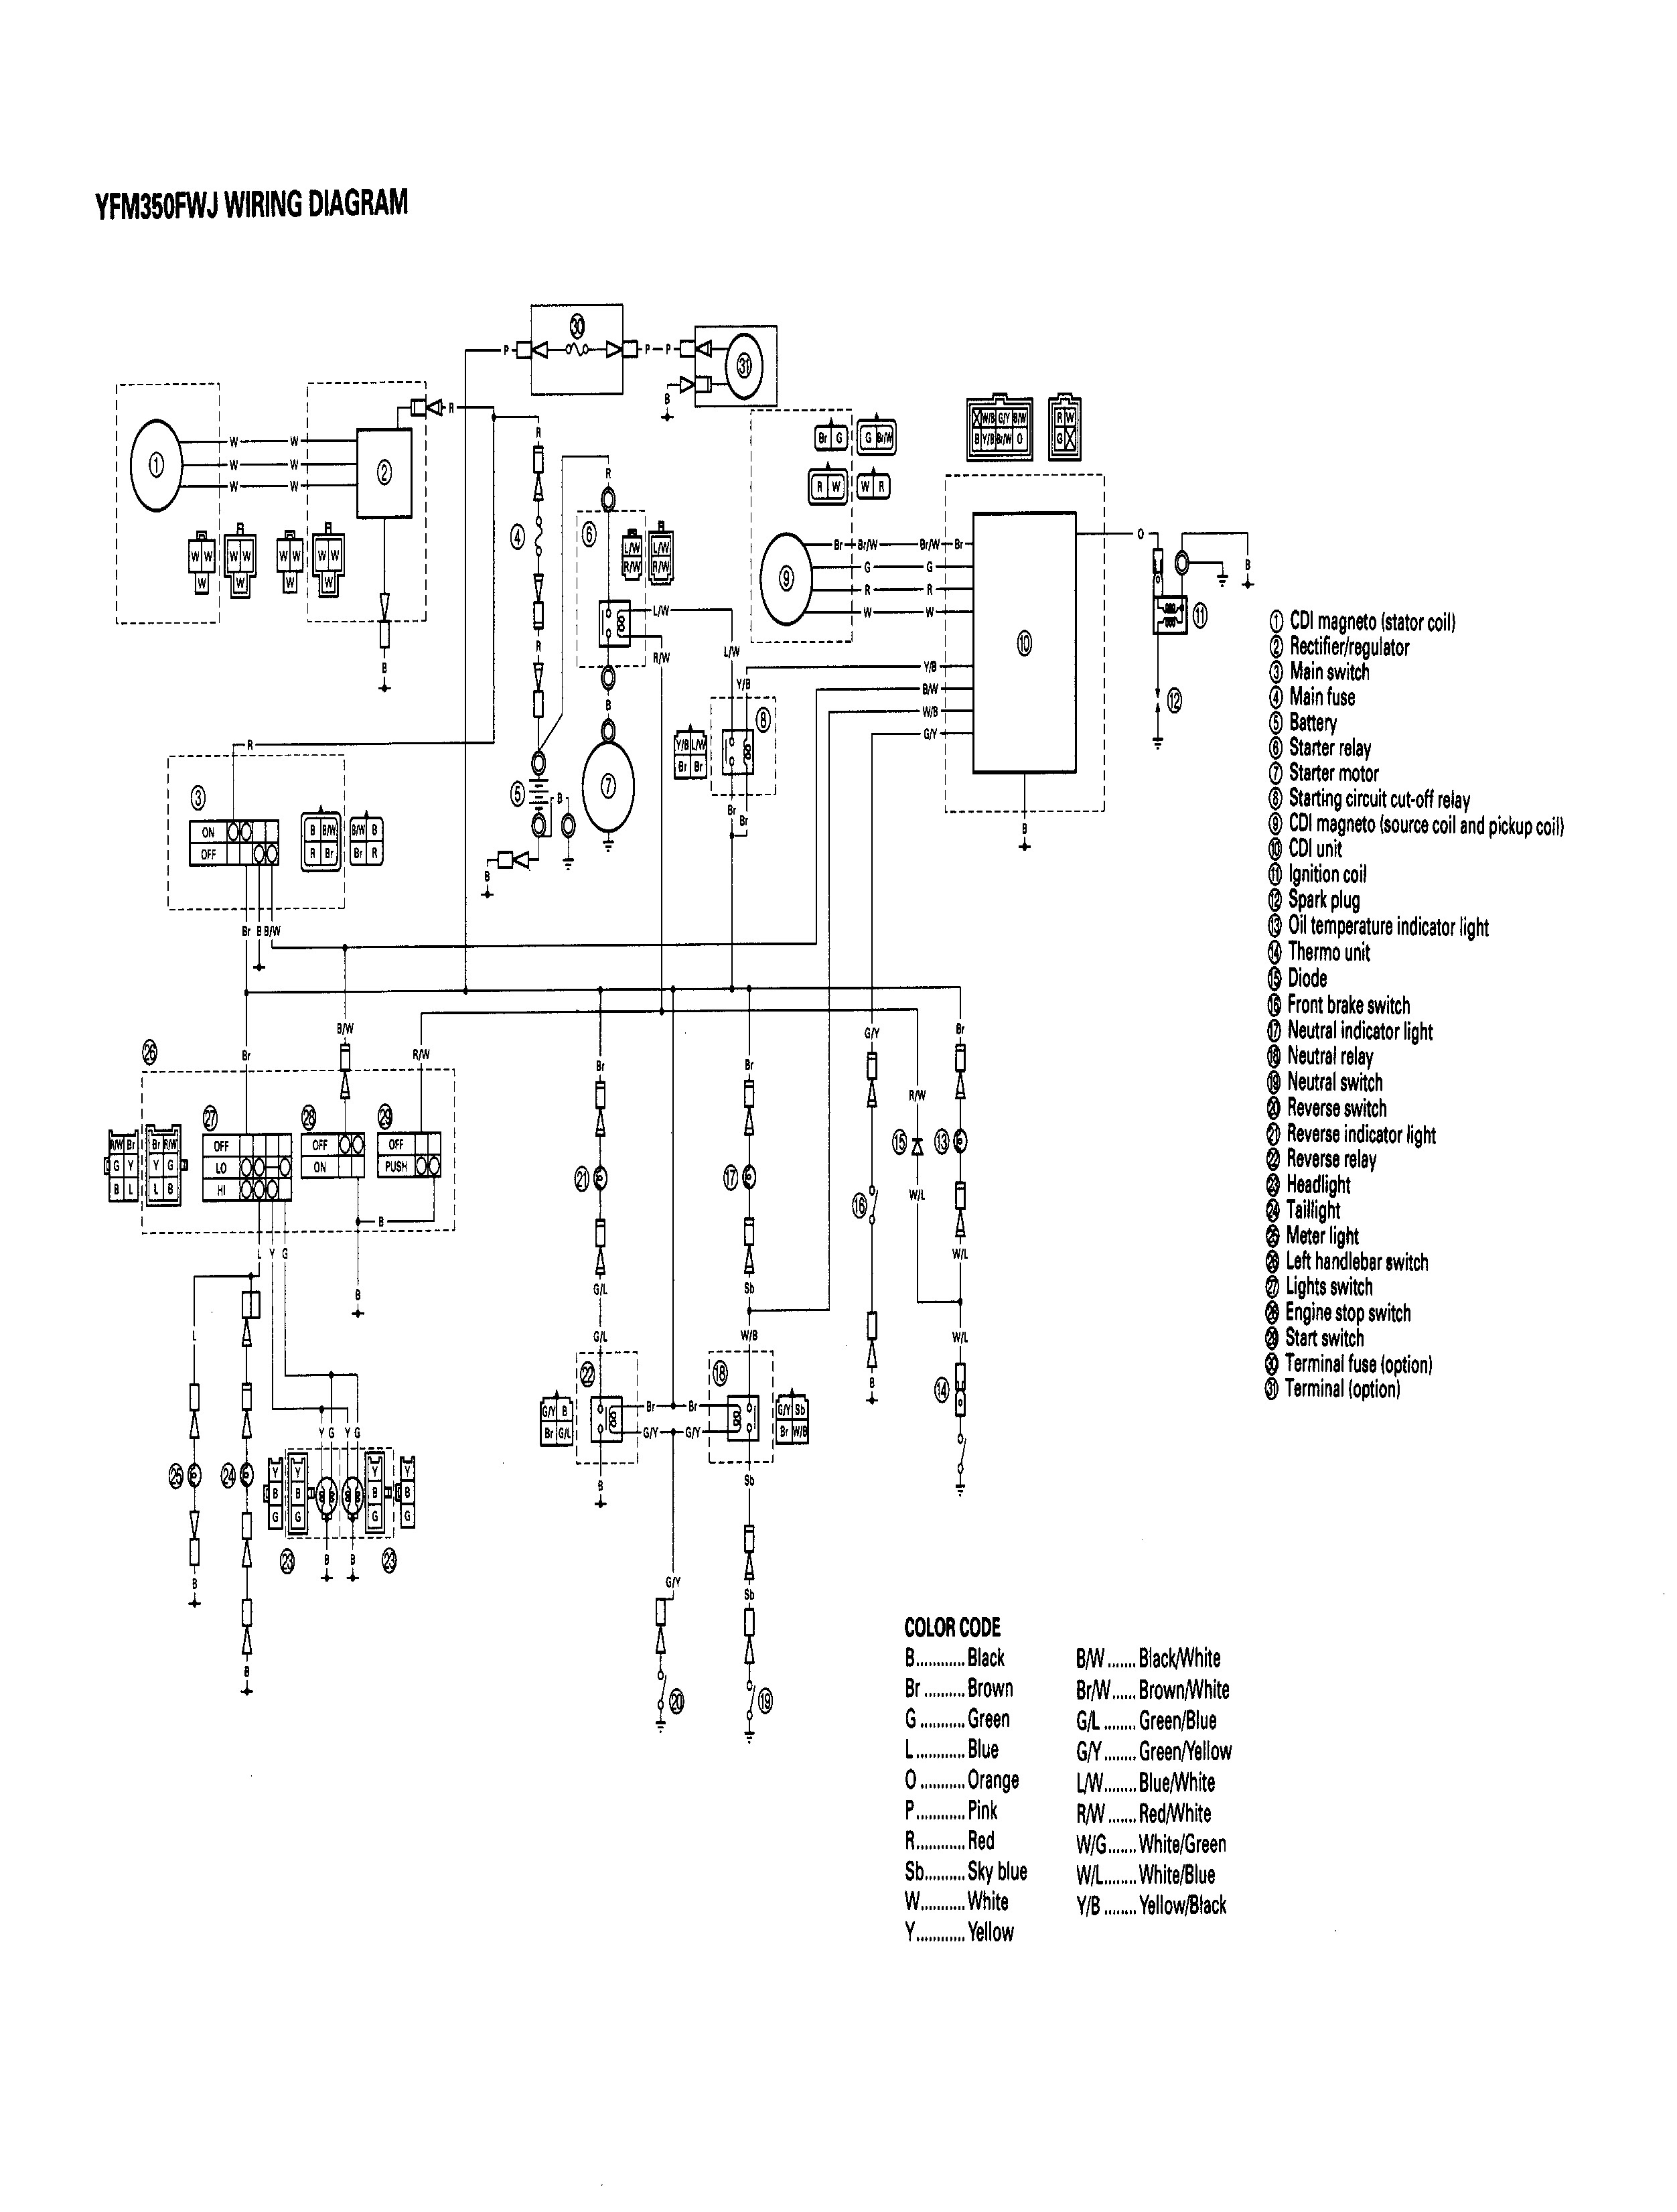 87 Yamaha Warrior Wiring Diagram